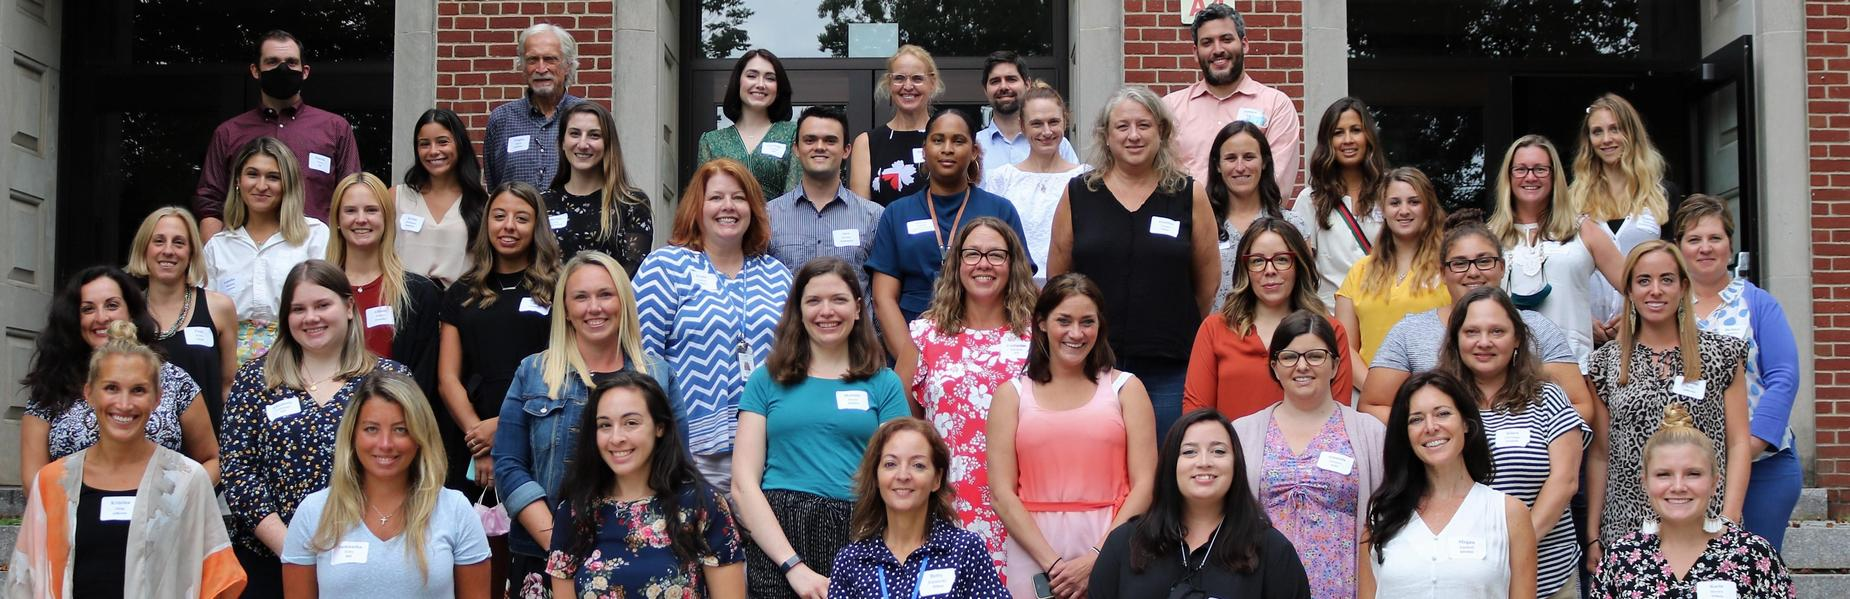 Forty-two new educators participated in a two-day orientation on Aug. 30-31 as part of the New Staff Institute (NSI), a two-year program designed to support first-time educators and those who are new to the district.